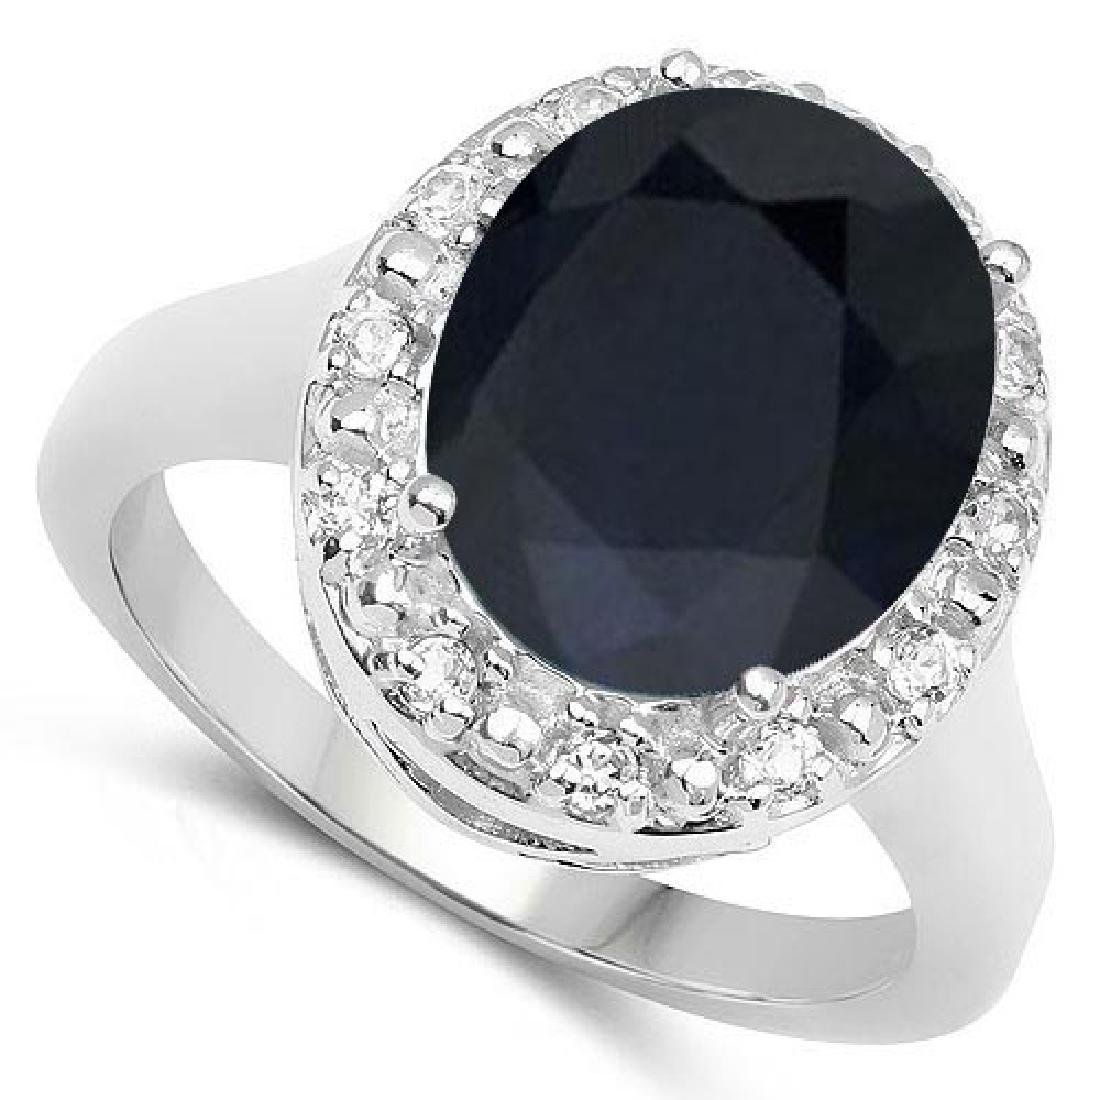 Certified 1.30 Ctw. Black Sapphire And Diamond 14K Whit